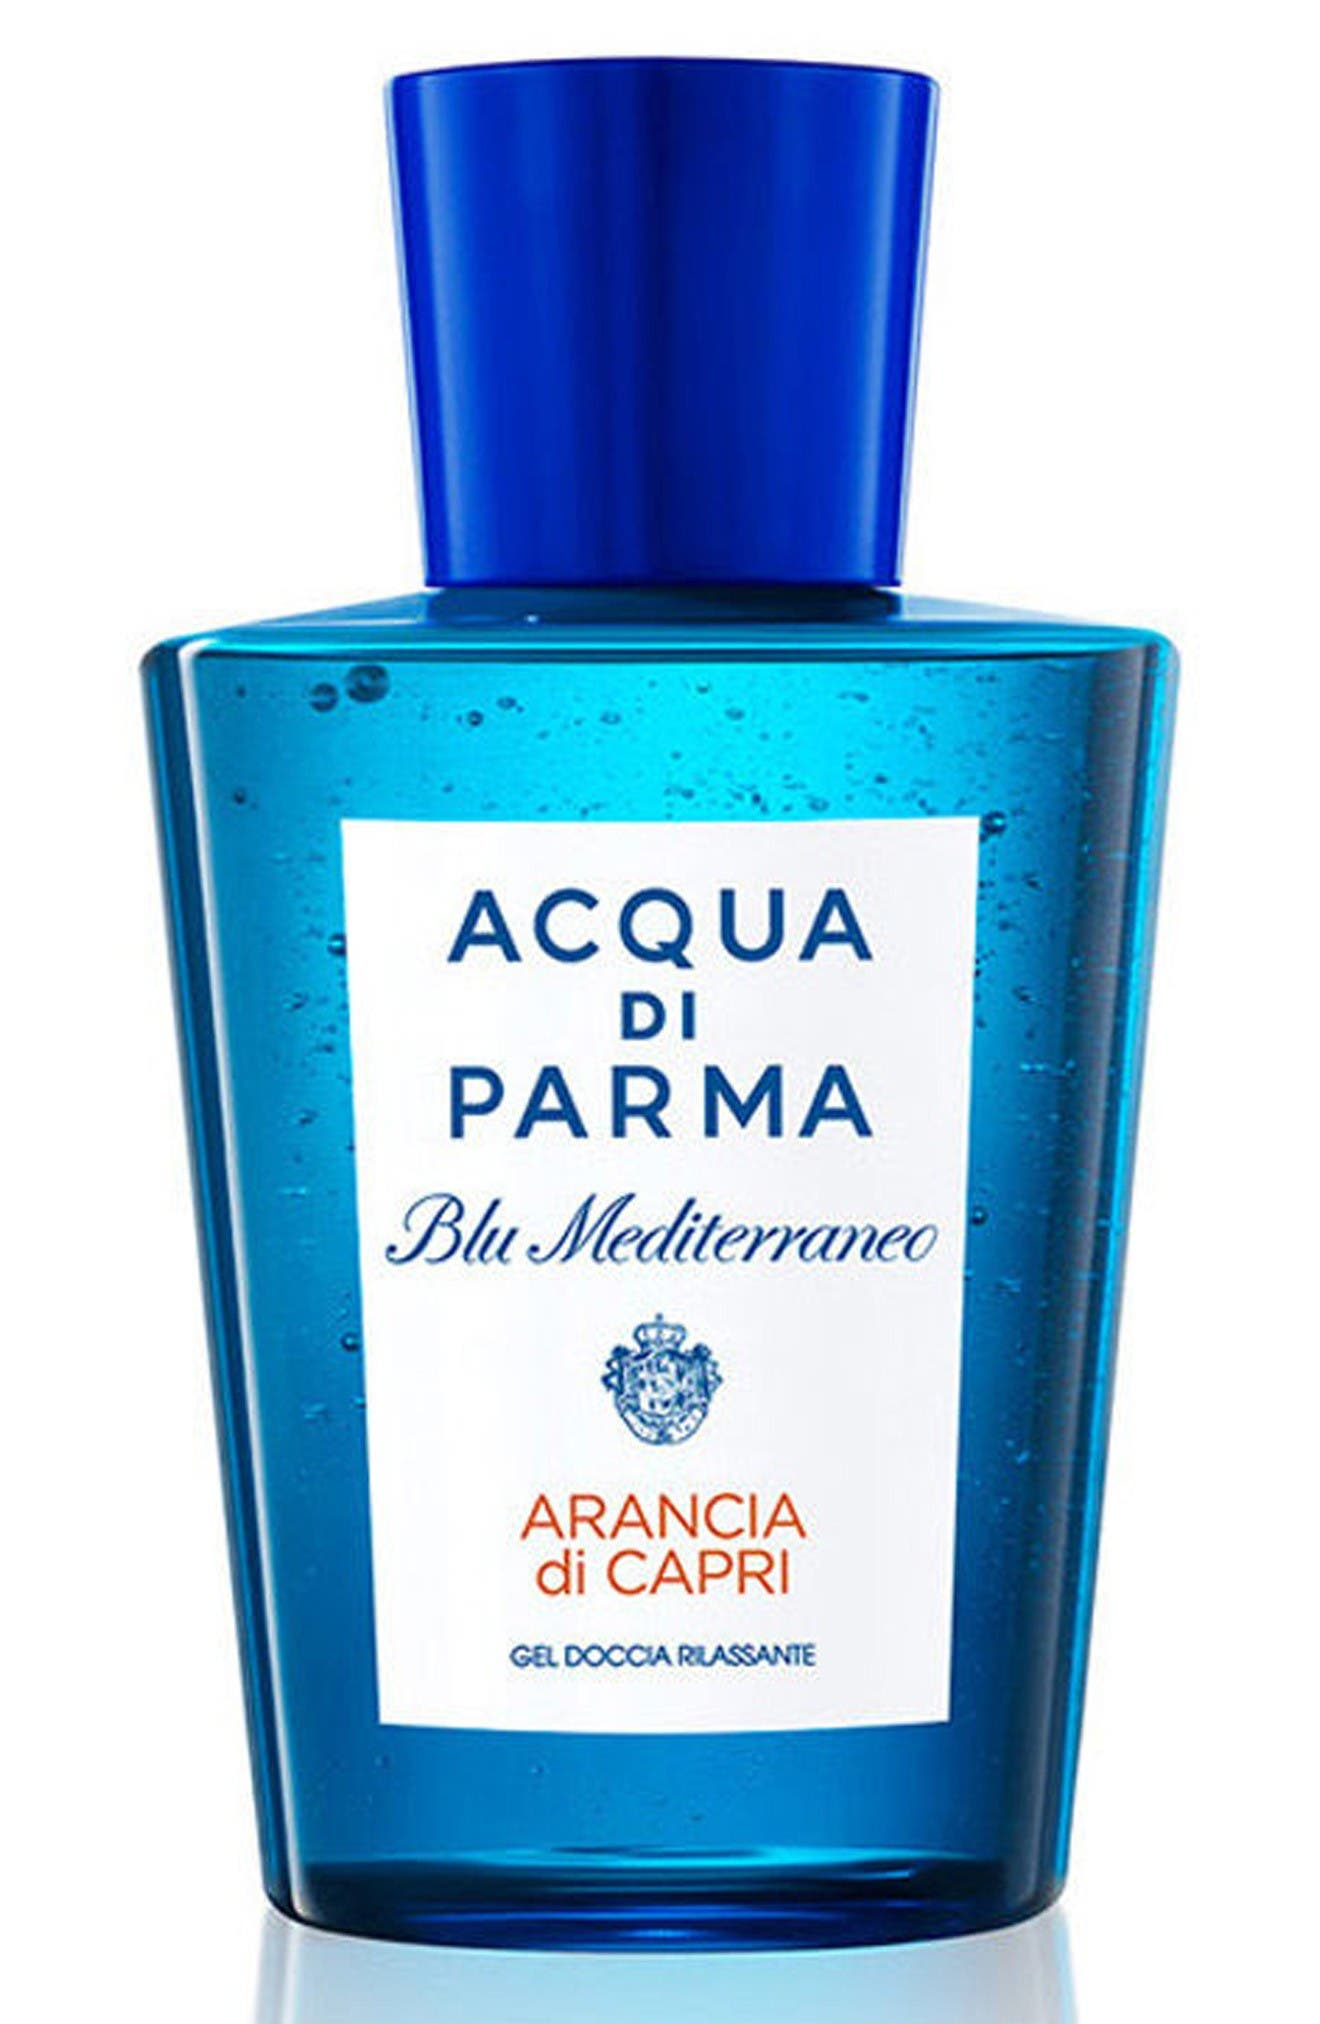 Alternate Image 1 Selected - Acqua di Parma 'Blu Mediterraneo - Arancia di Capri' Shower Gel